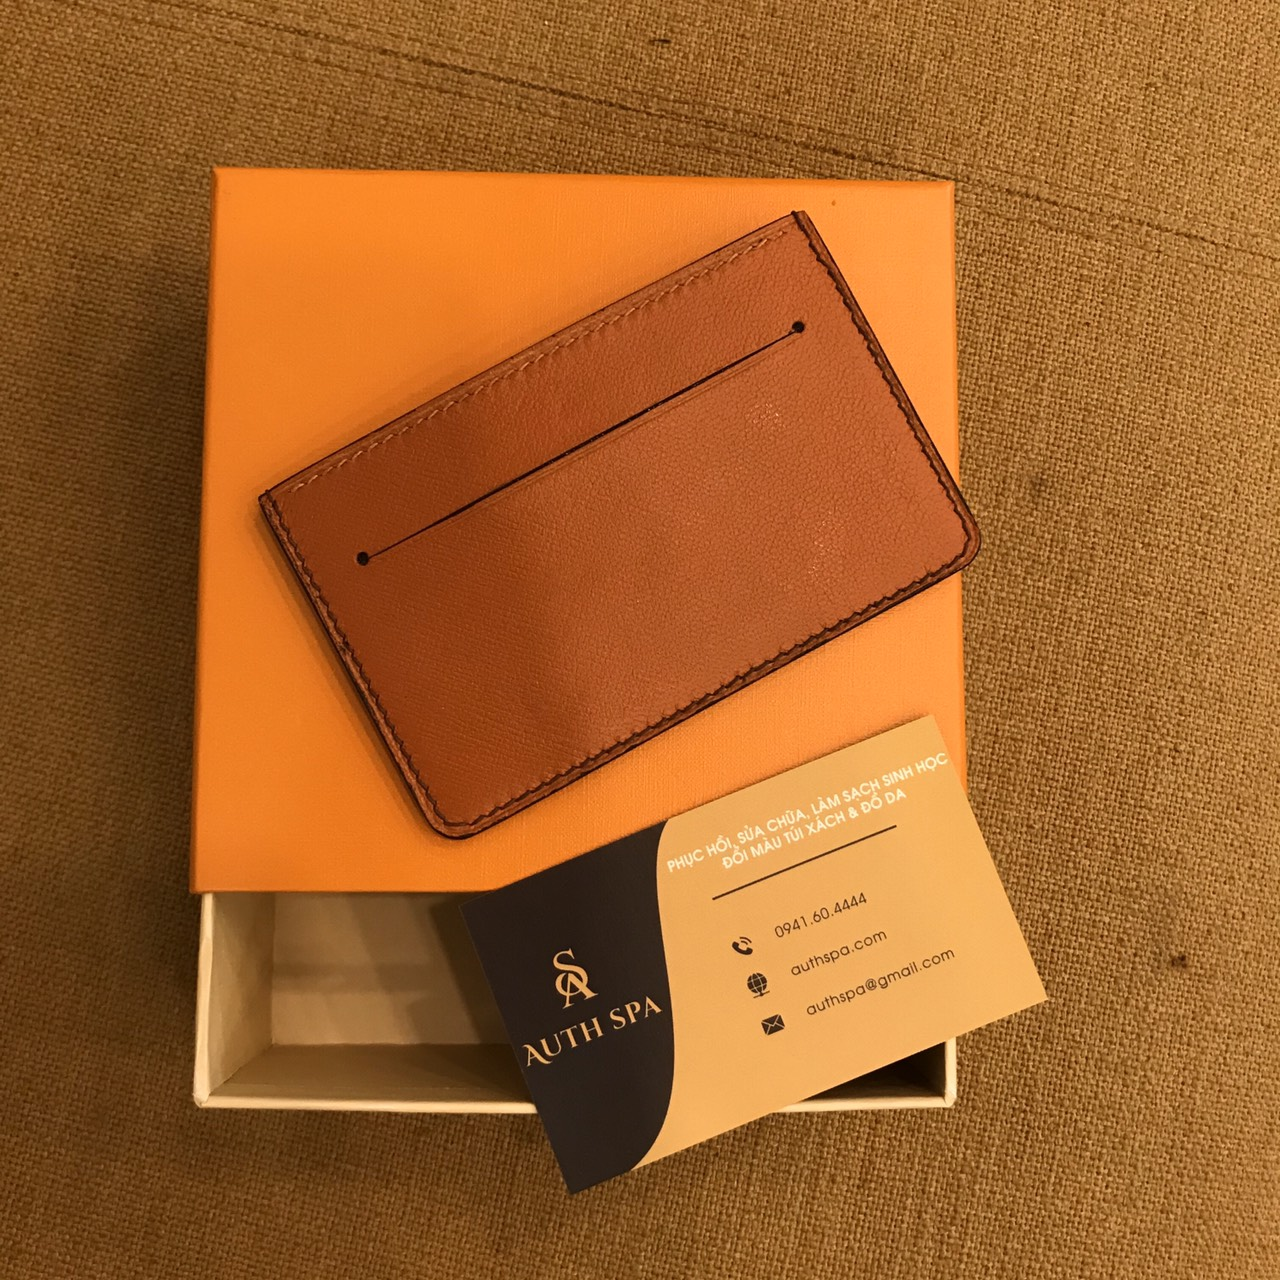 Ví Đựng Card LV ( Card Holder Louis Vuitton ) 13